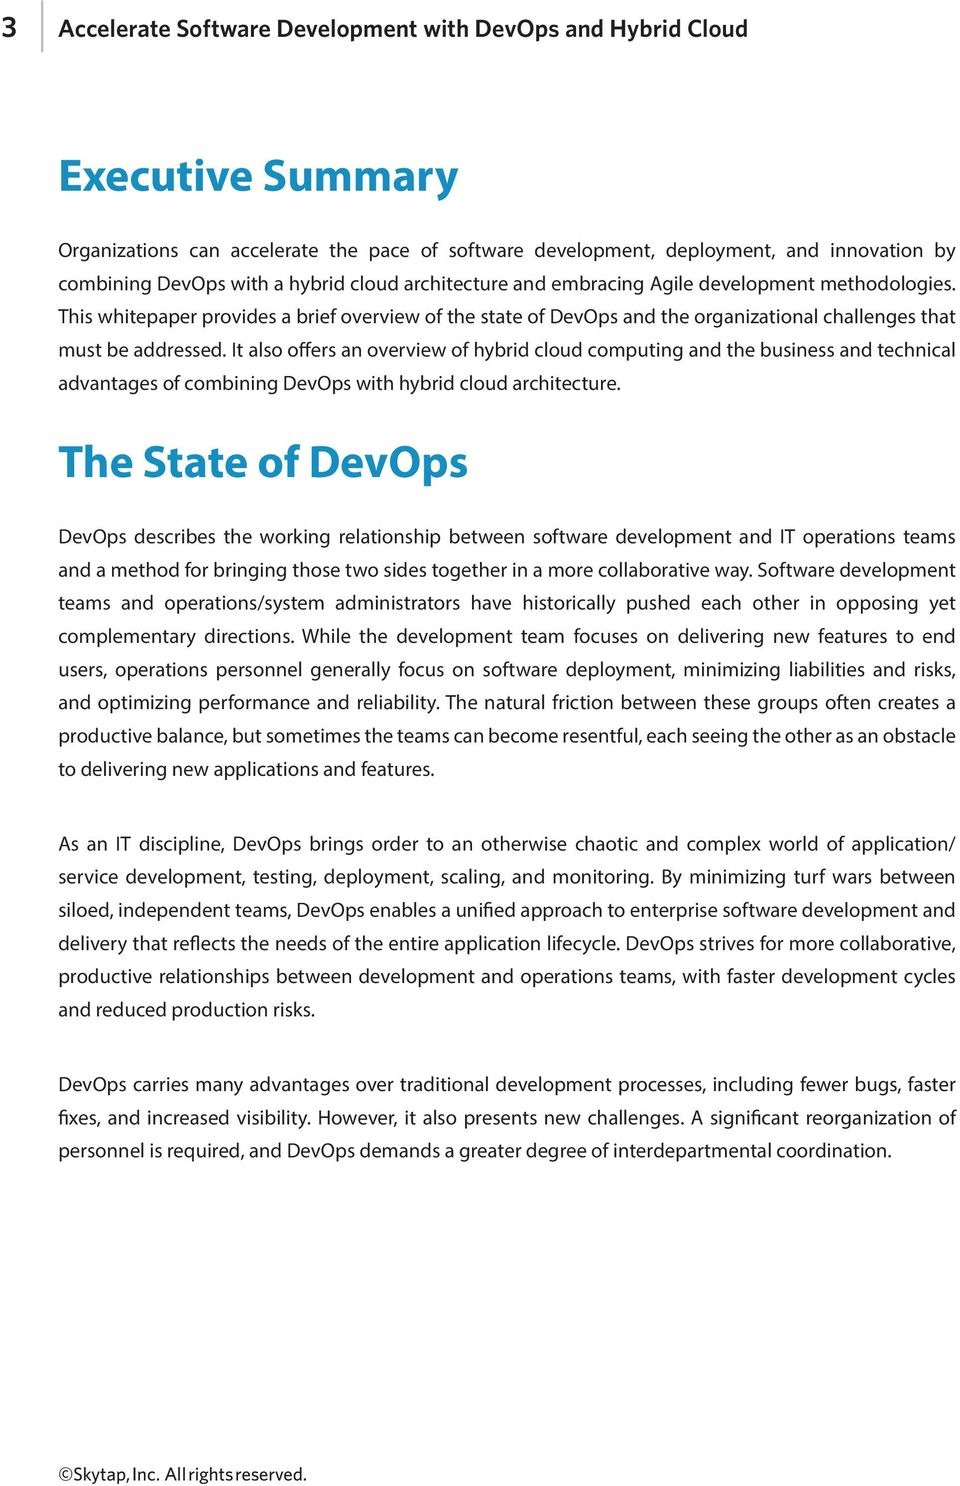 It also offers an overview of hybrid cloud computing and the business and technical advantages of combining DevOps with hybrid cloud architecture.